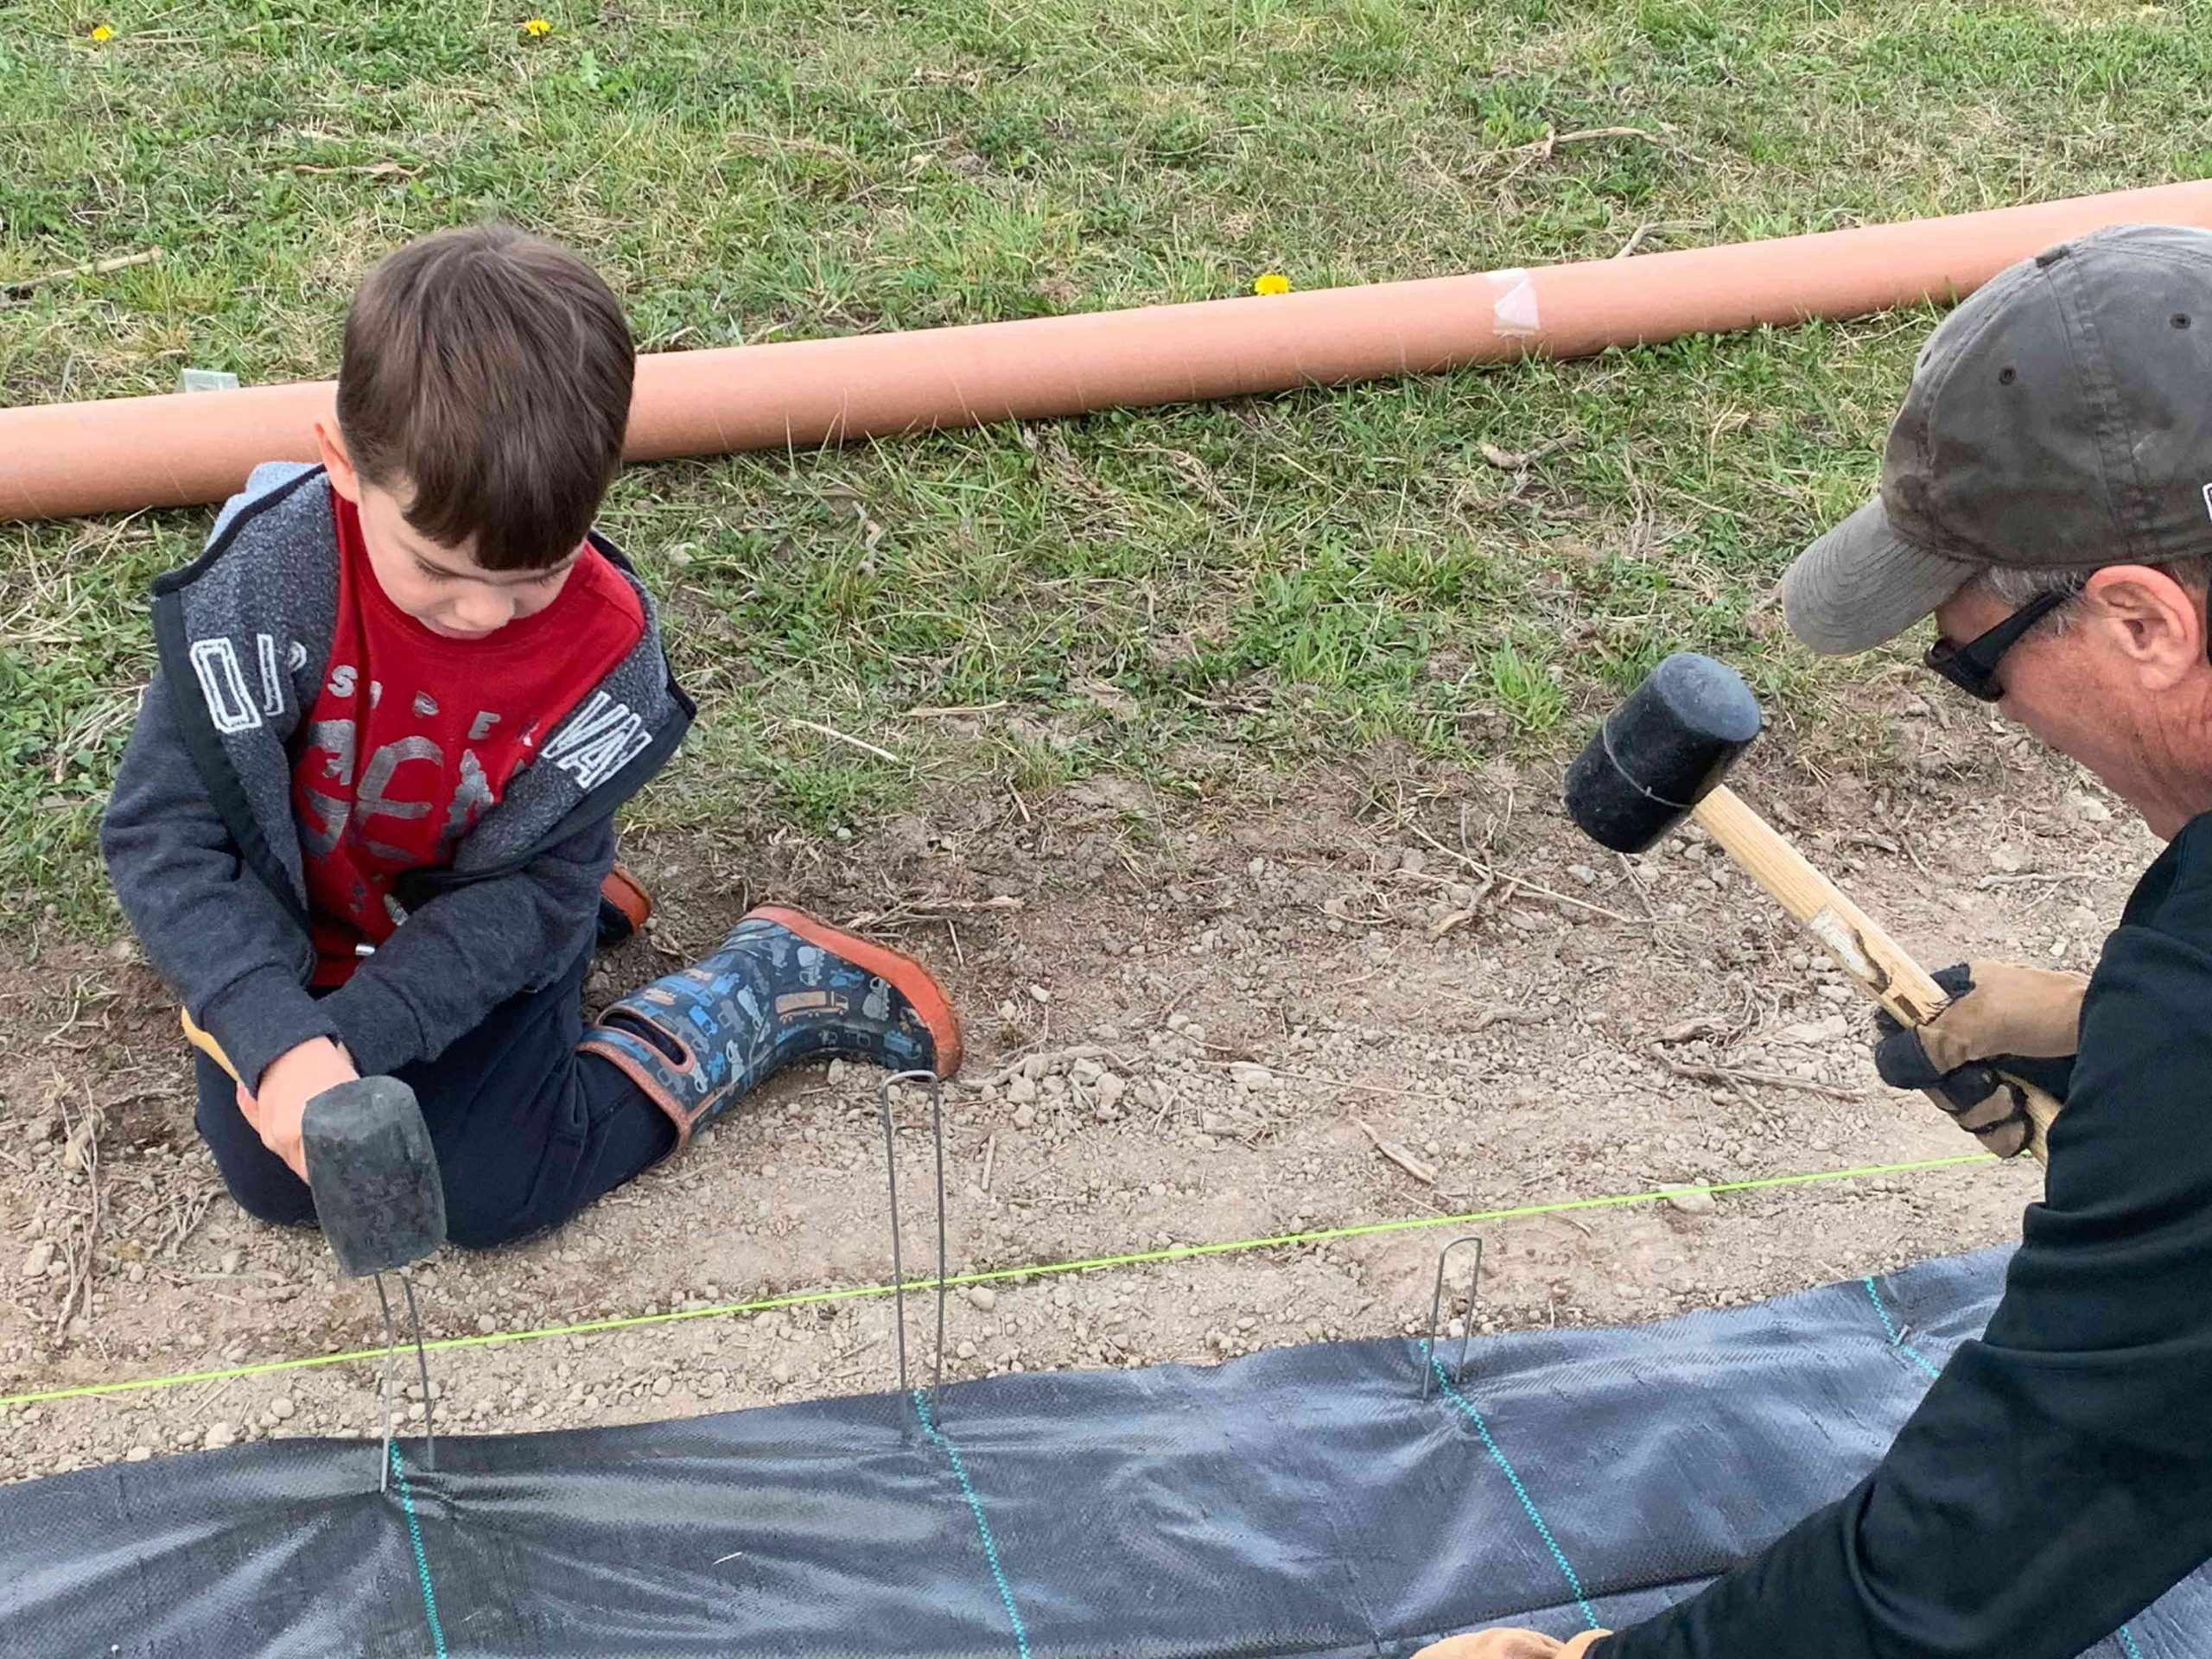 Sawyer and Keith Stapling Ground Cover